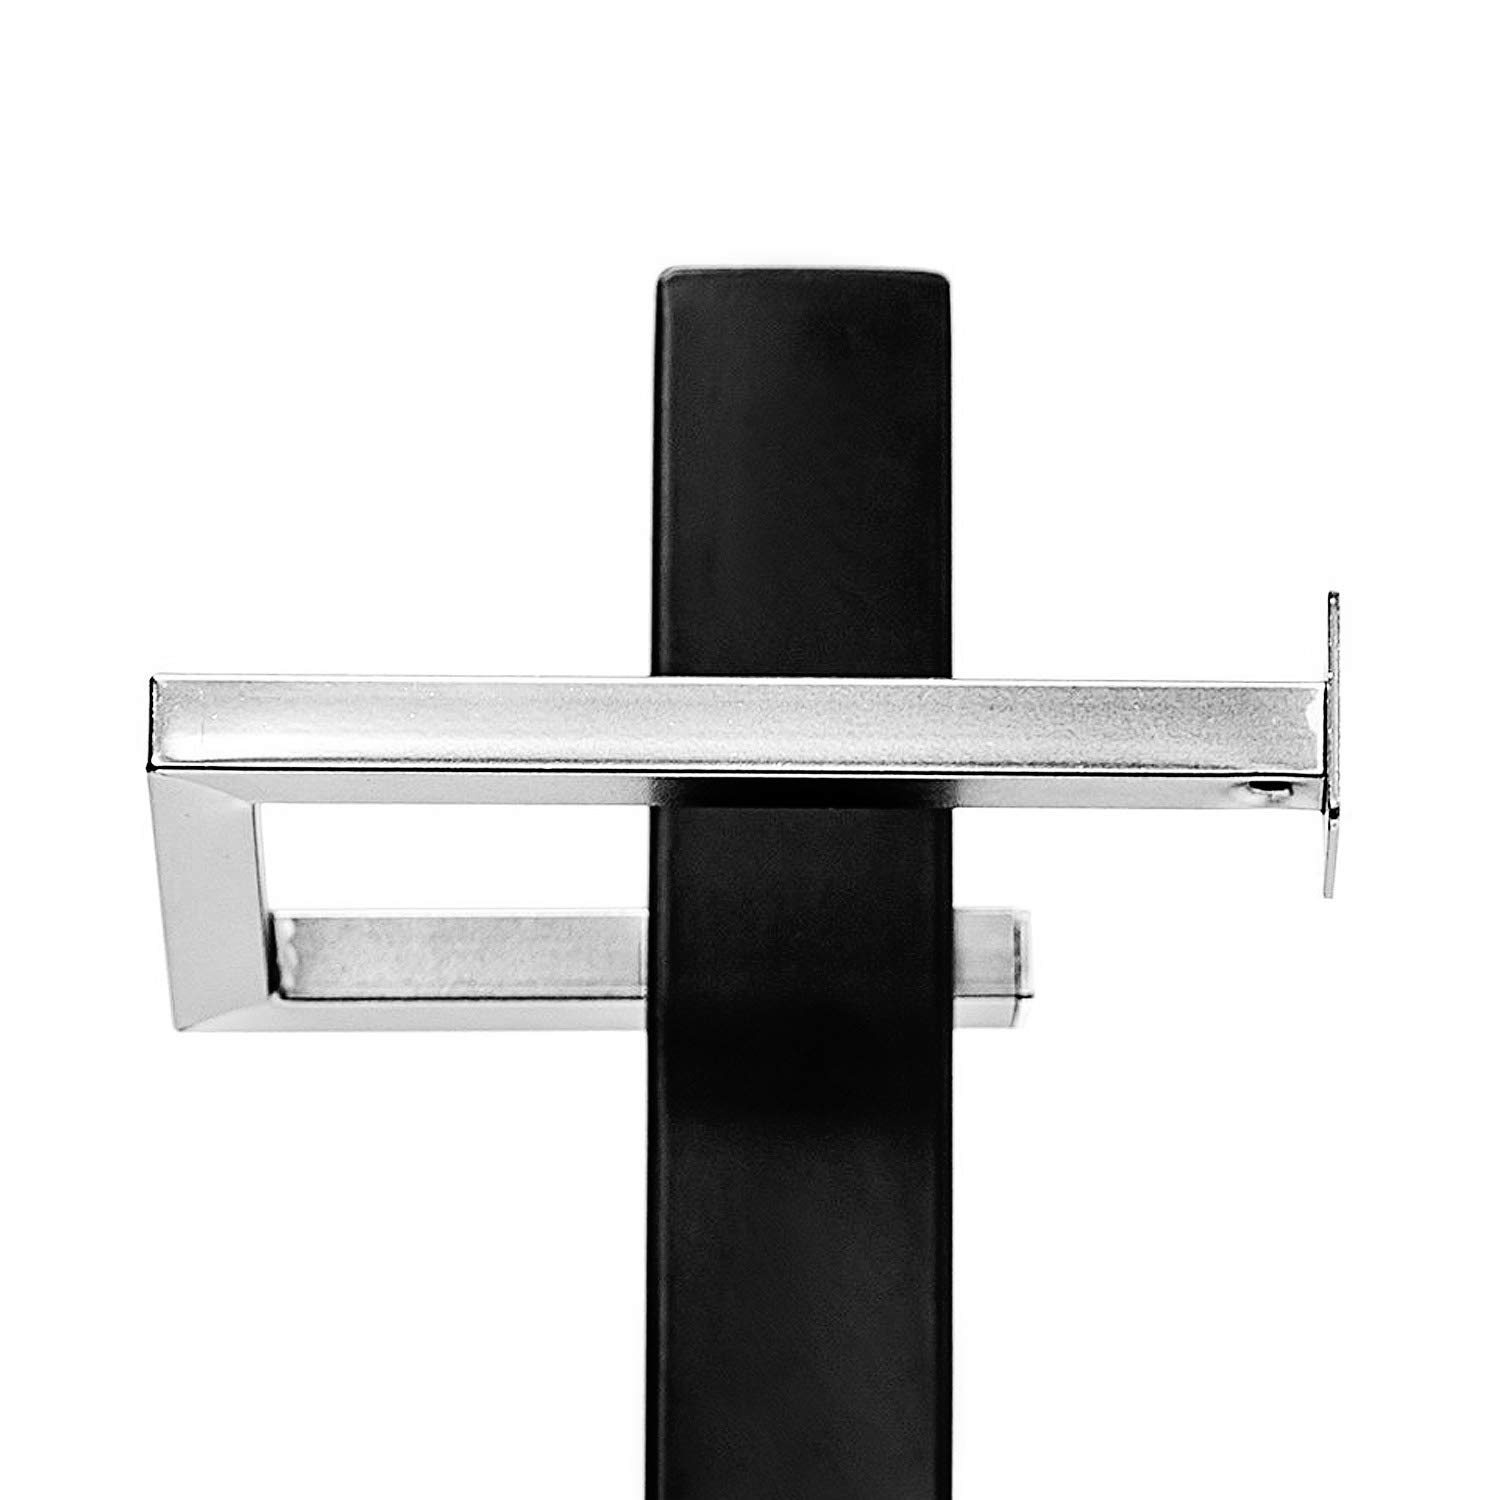 Free Standing Toilet Paper Holder Black Tissue Industrial Bathroom Toilet Brush And Holder Set Stand Silver by FOYUEE (Image #4)